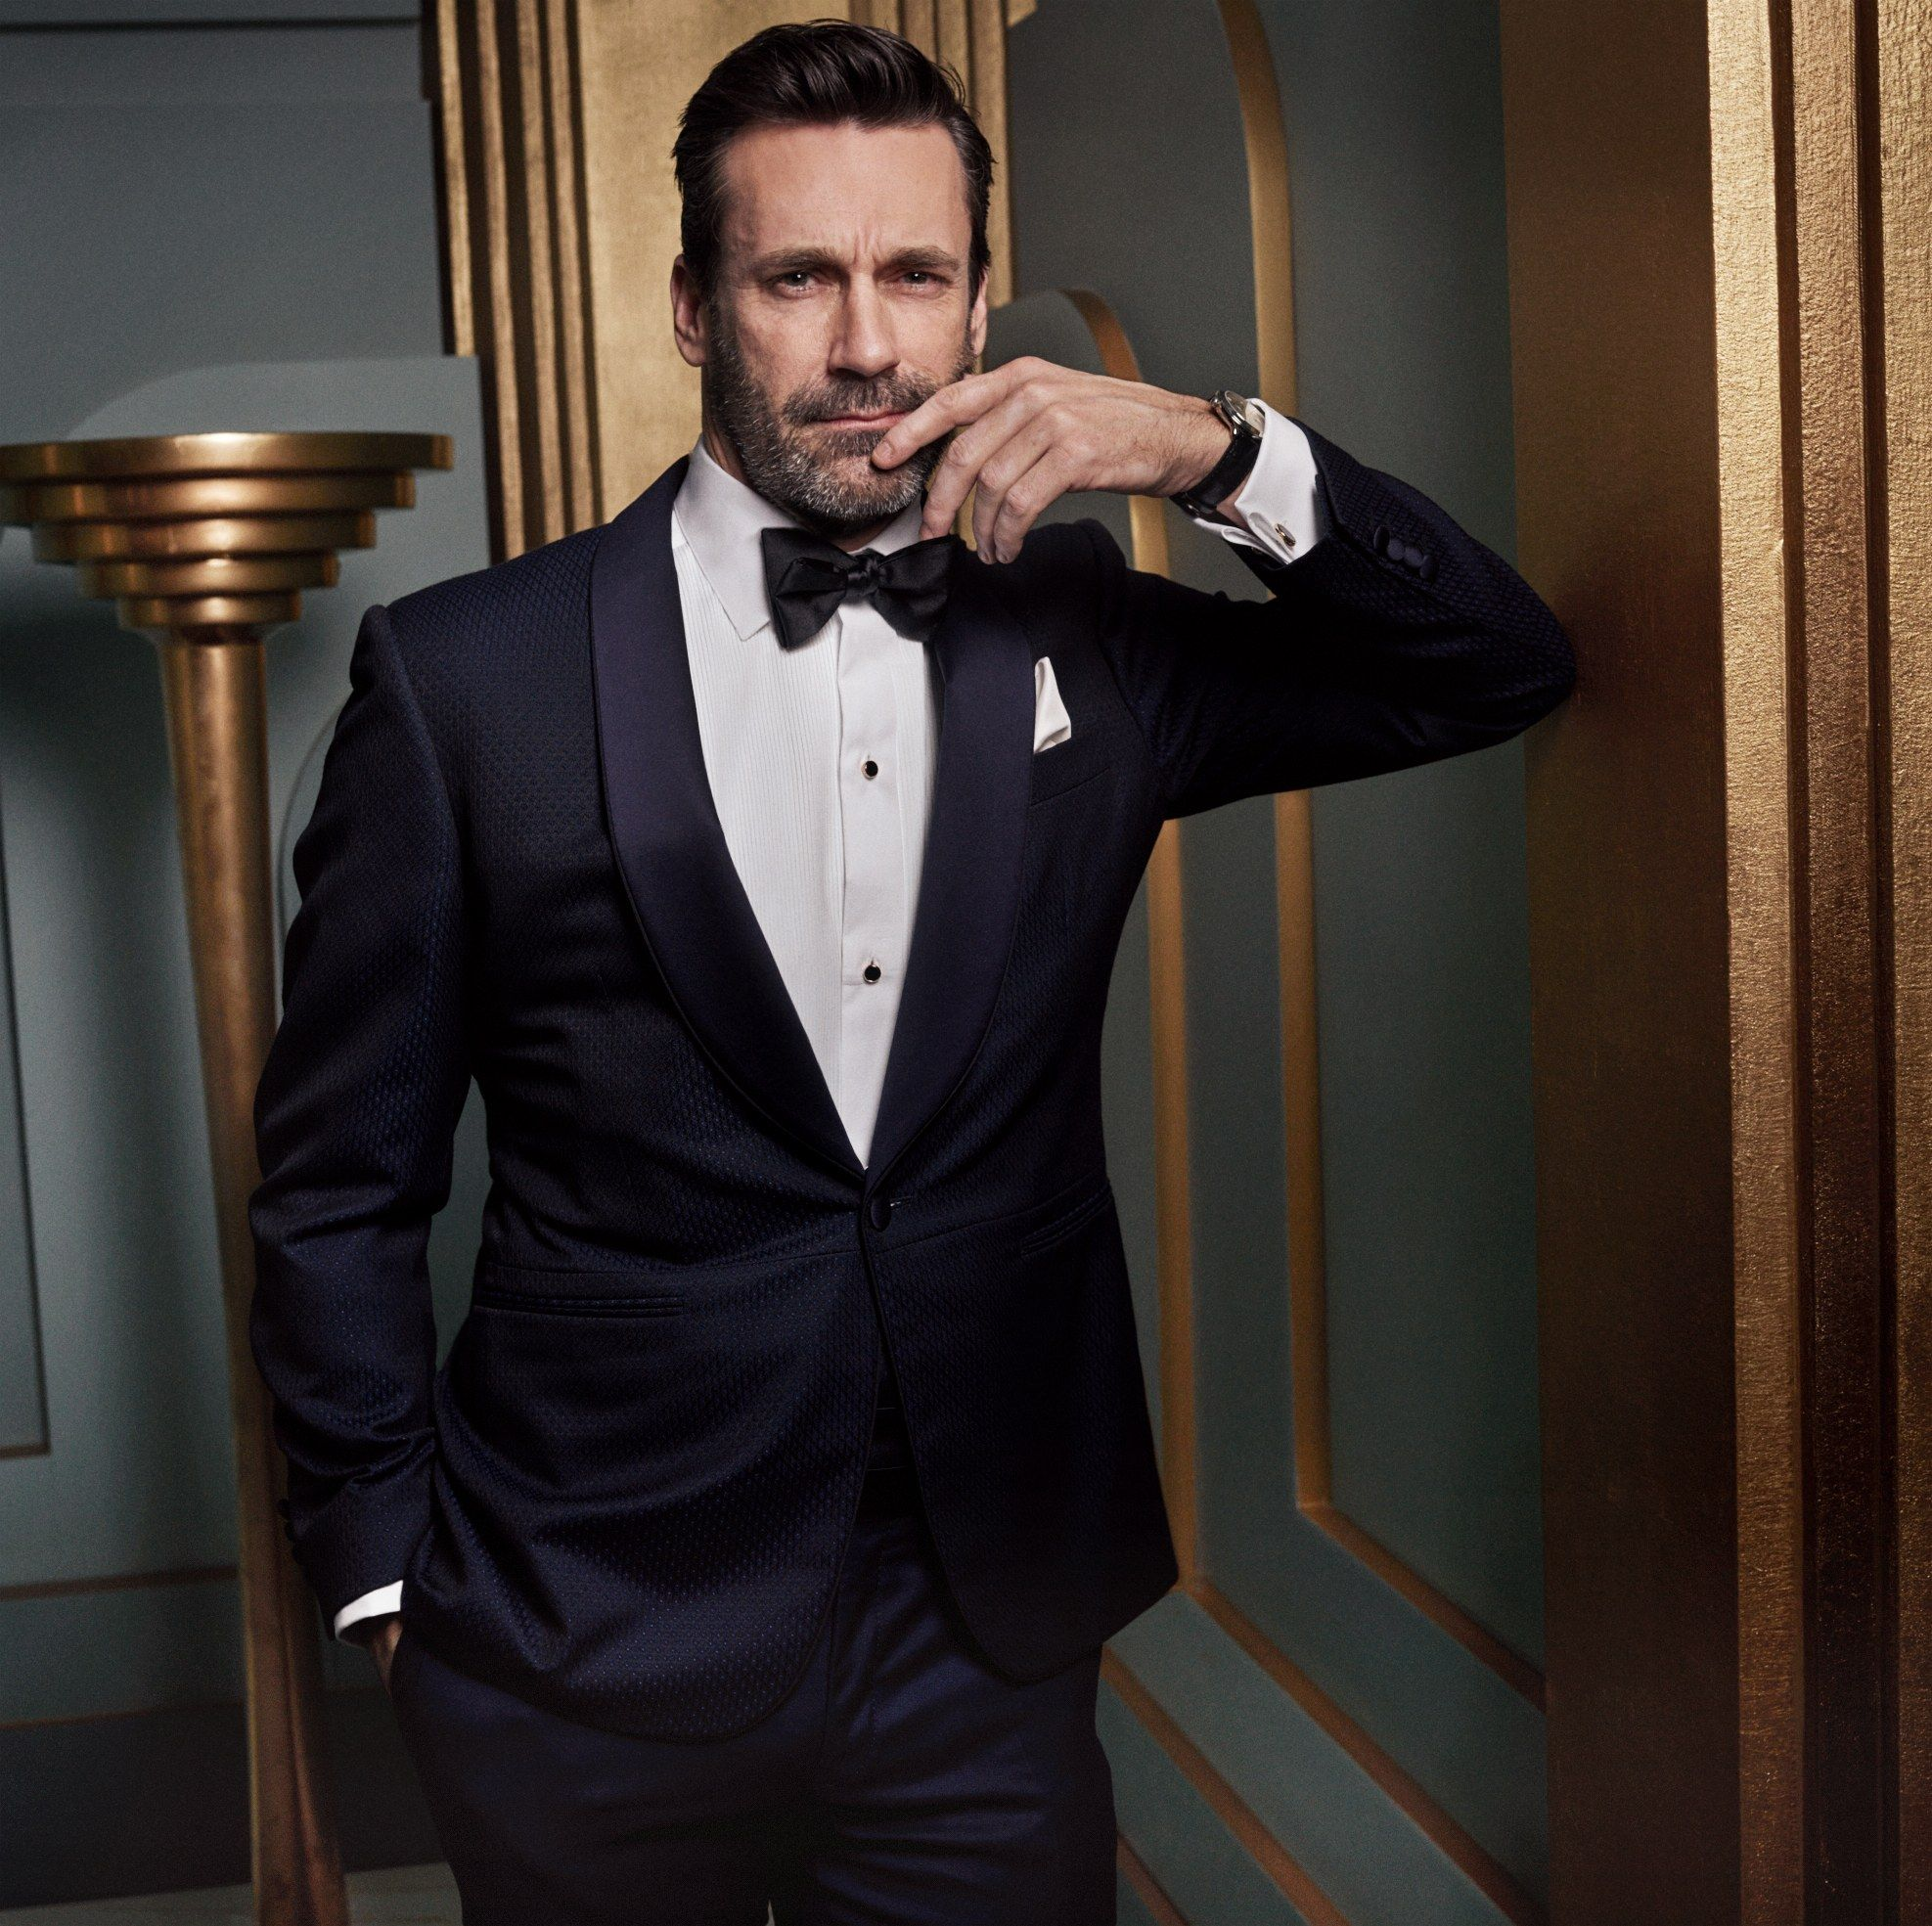 Jon Hamm Inside The Vfoscars Instagram Portrait Studio Celebrity Portraits Jon Hamm Vanity Fair